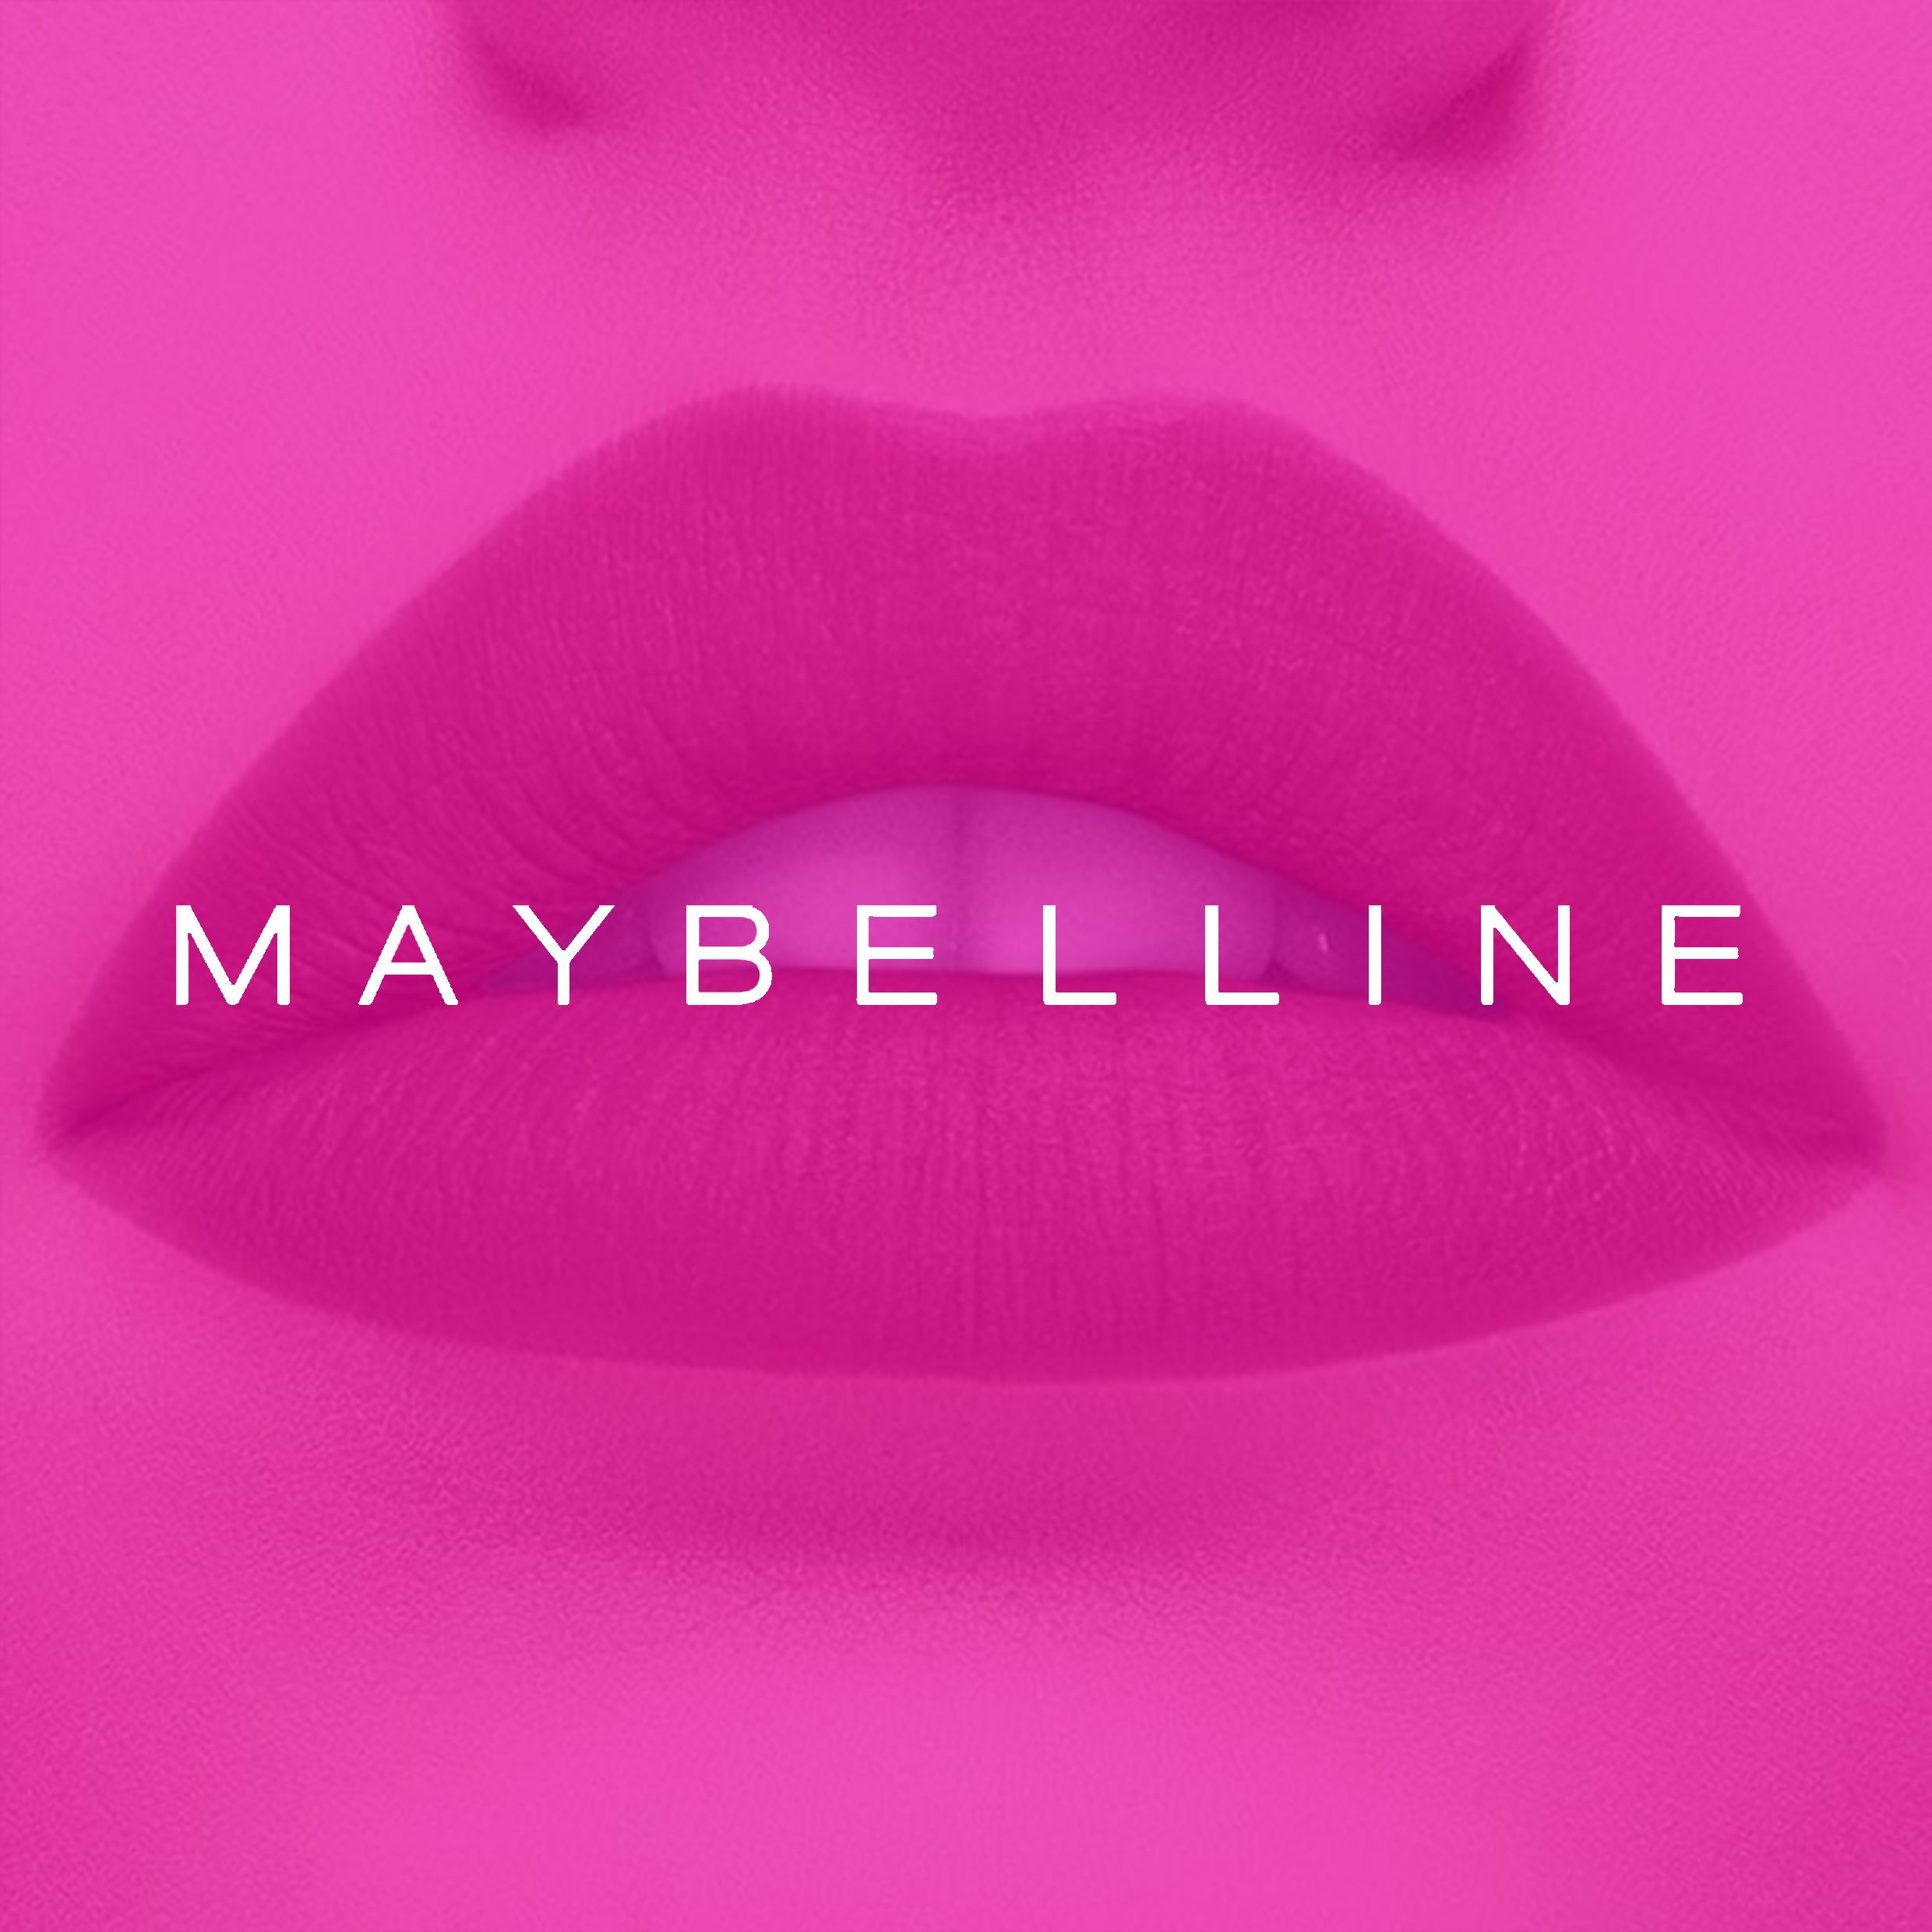 Maybelline - What Makeup Means to you - VIDEO PRODUCTION